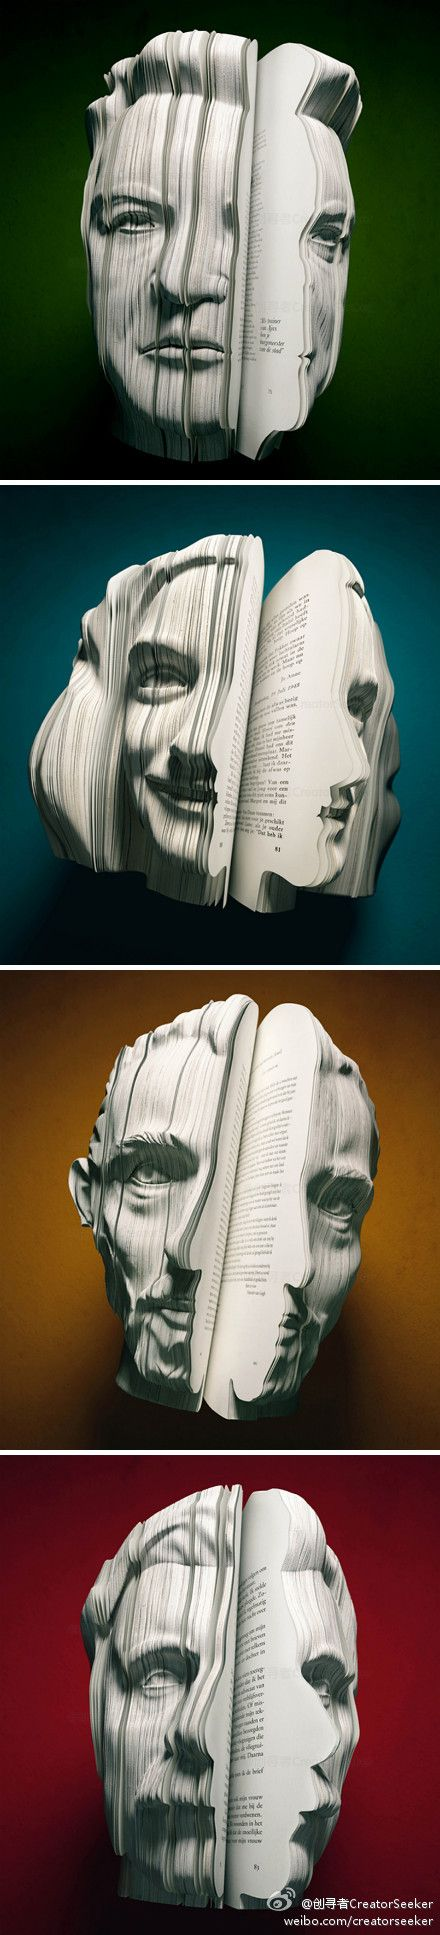 """Written Portraits"" -  Created by the artist Souverein for The Van Wantern Etcetera agency's advertising campaign - autobiographical books in the shape of the author's face (Louis Van Gaal, Anne Frank, Vincent Van Gogh and Kader Abdolah."